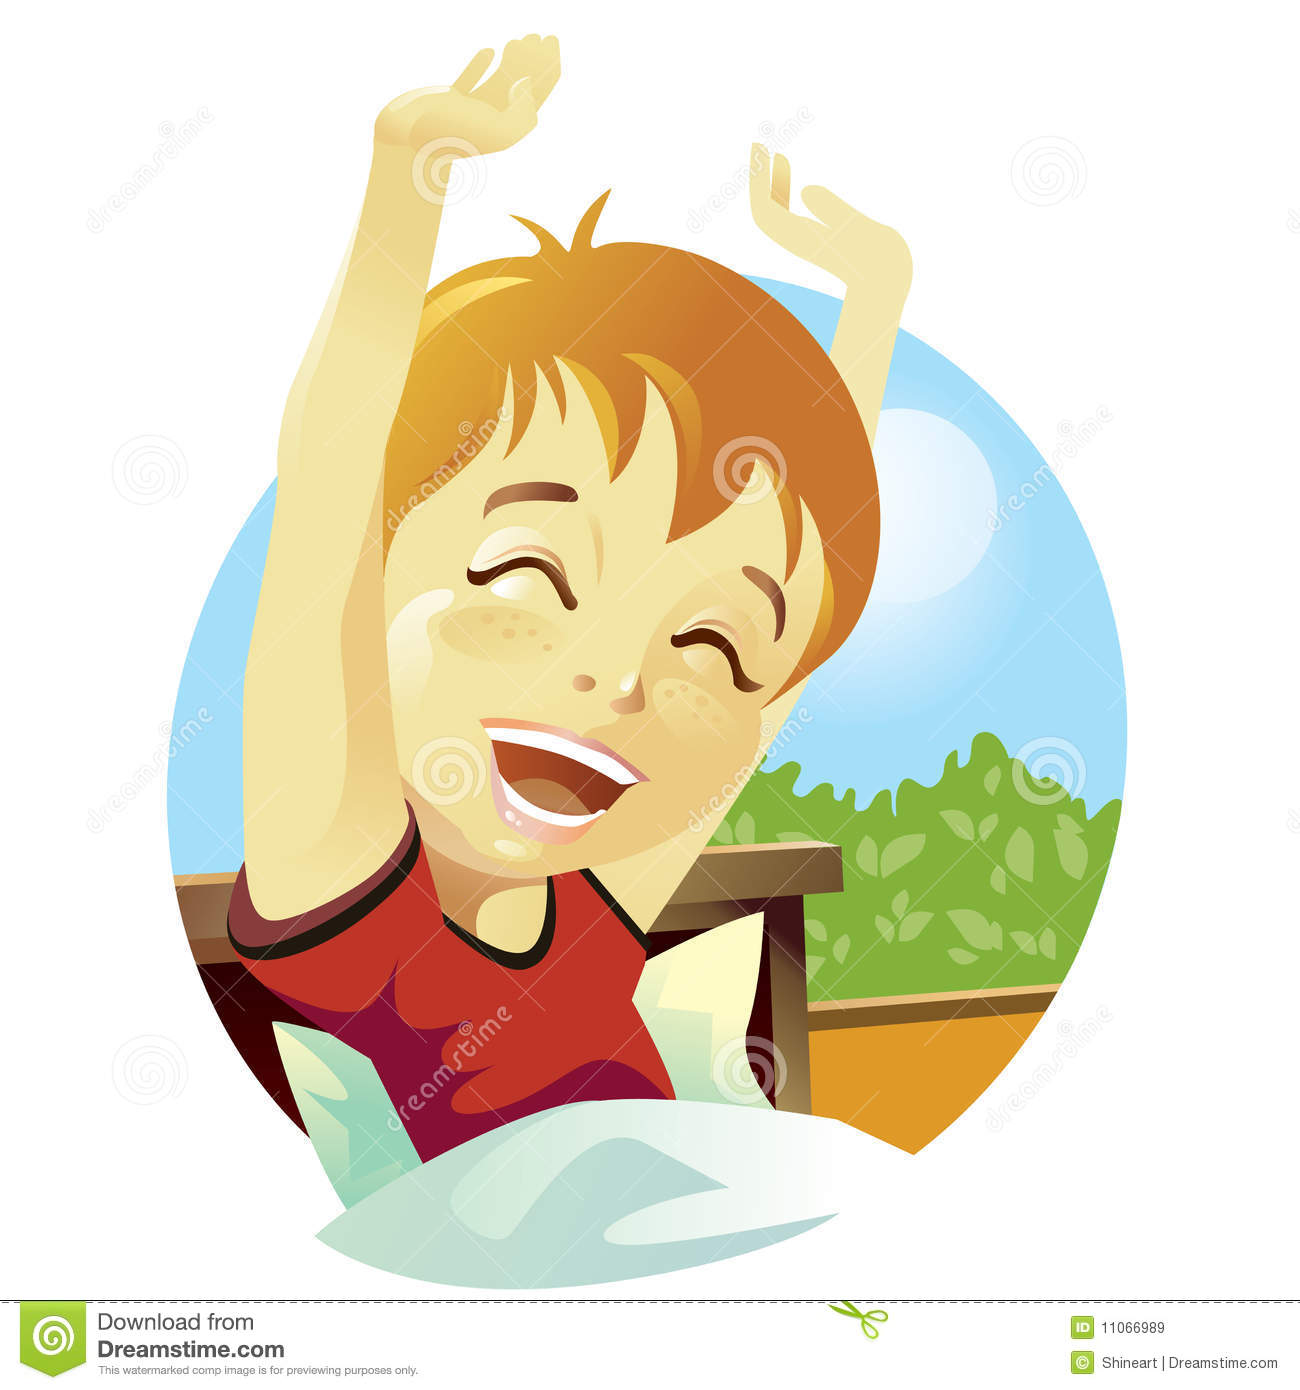 boy waking up clipart clipart suggest waking up clipart black and white waking up clipart funny